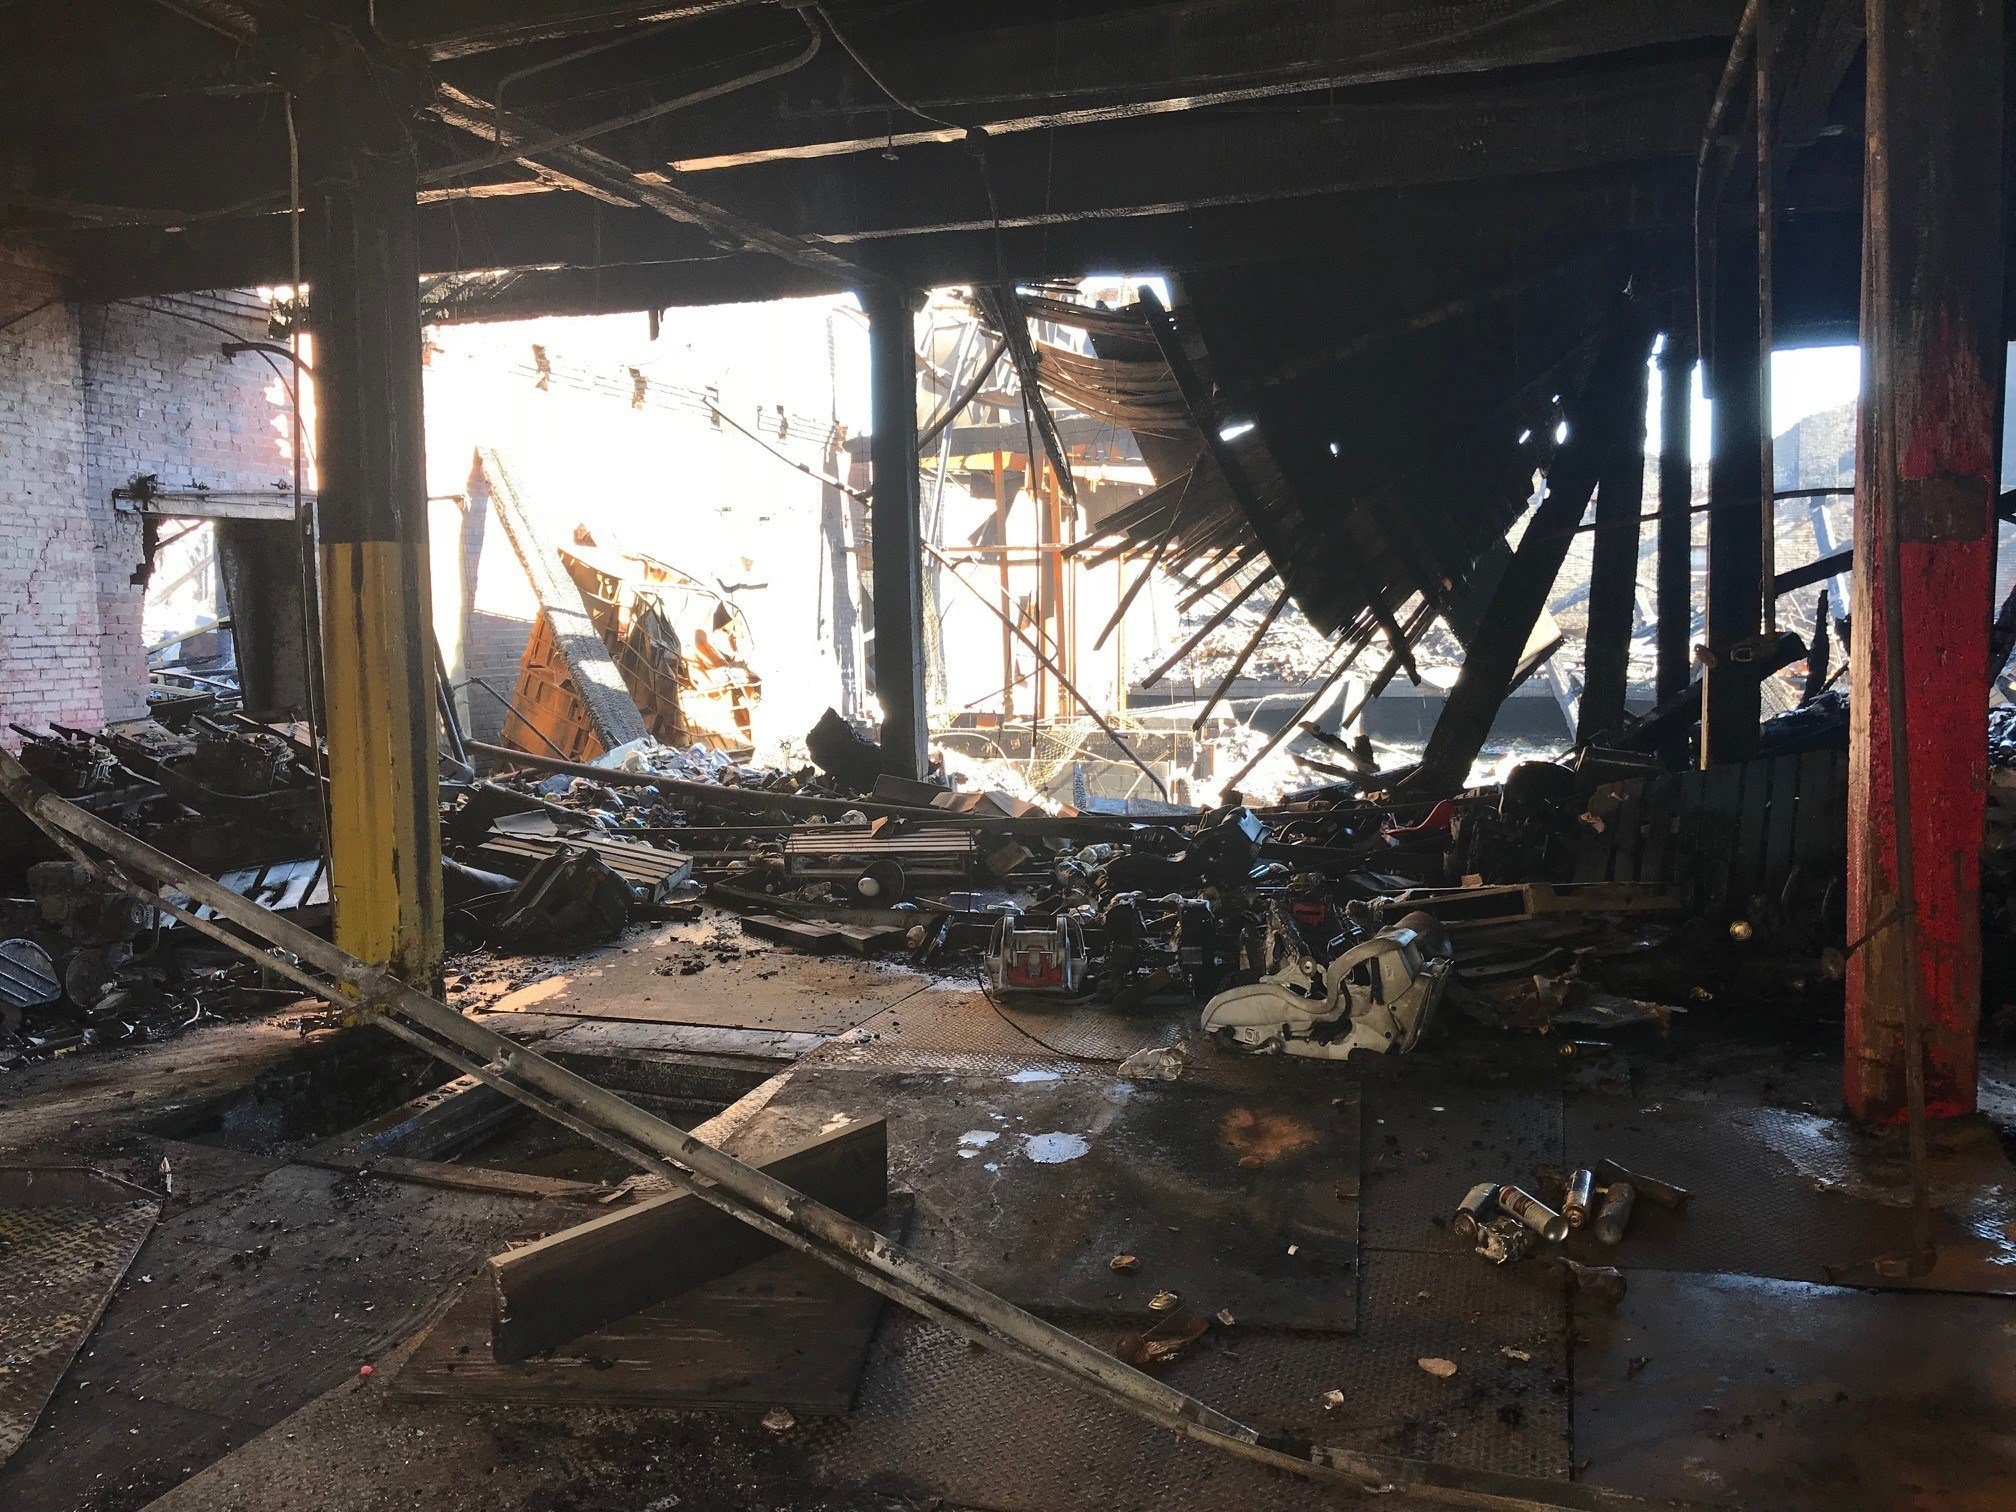 interior view of the Park Warehouse Services building near 39th & Park in St. Louis which was destroyed in a huge fire.